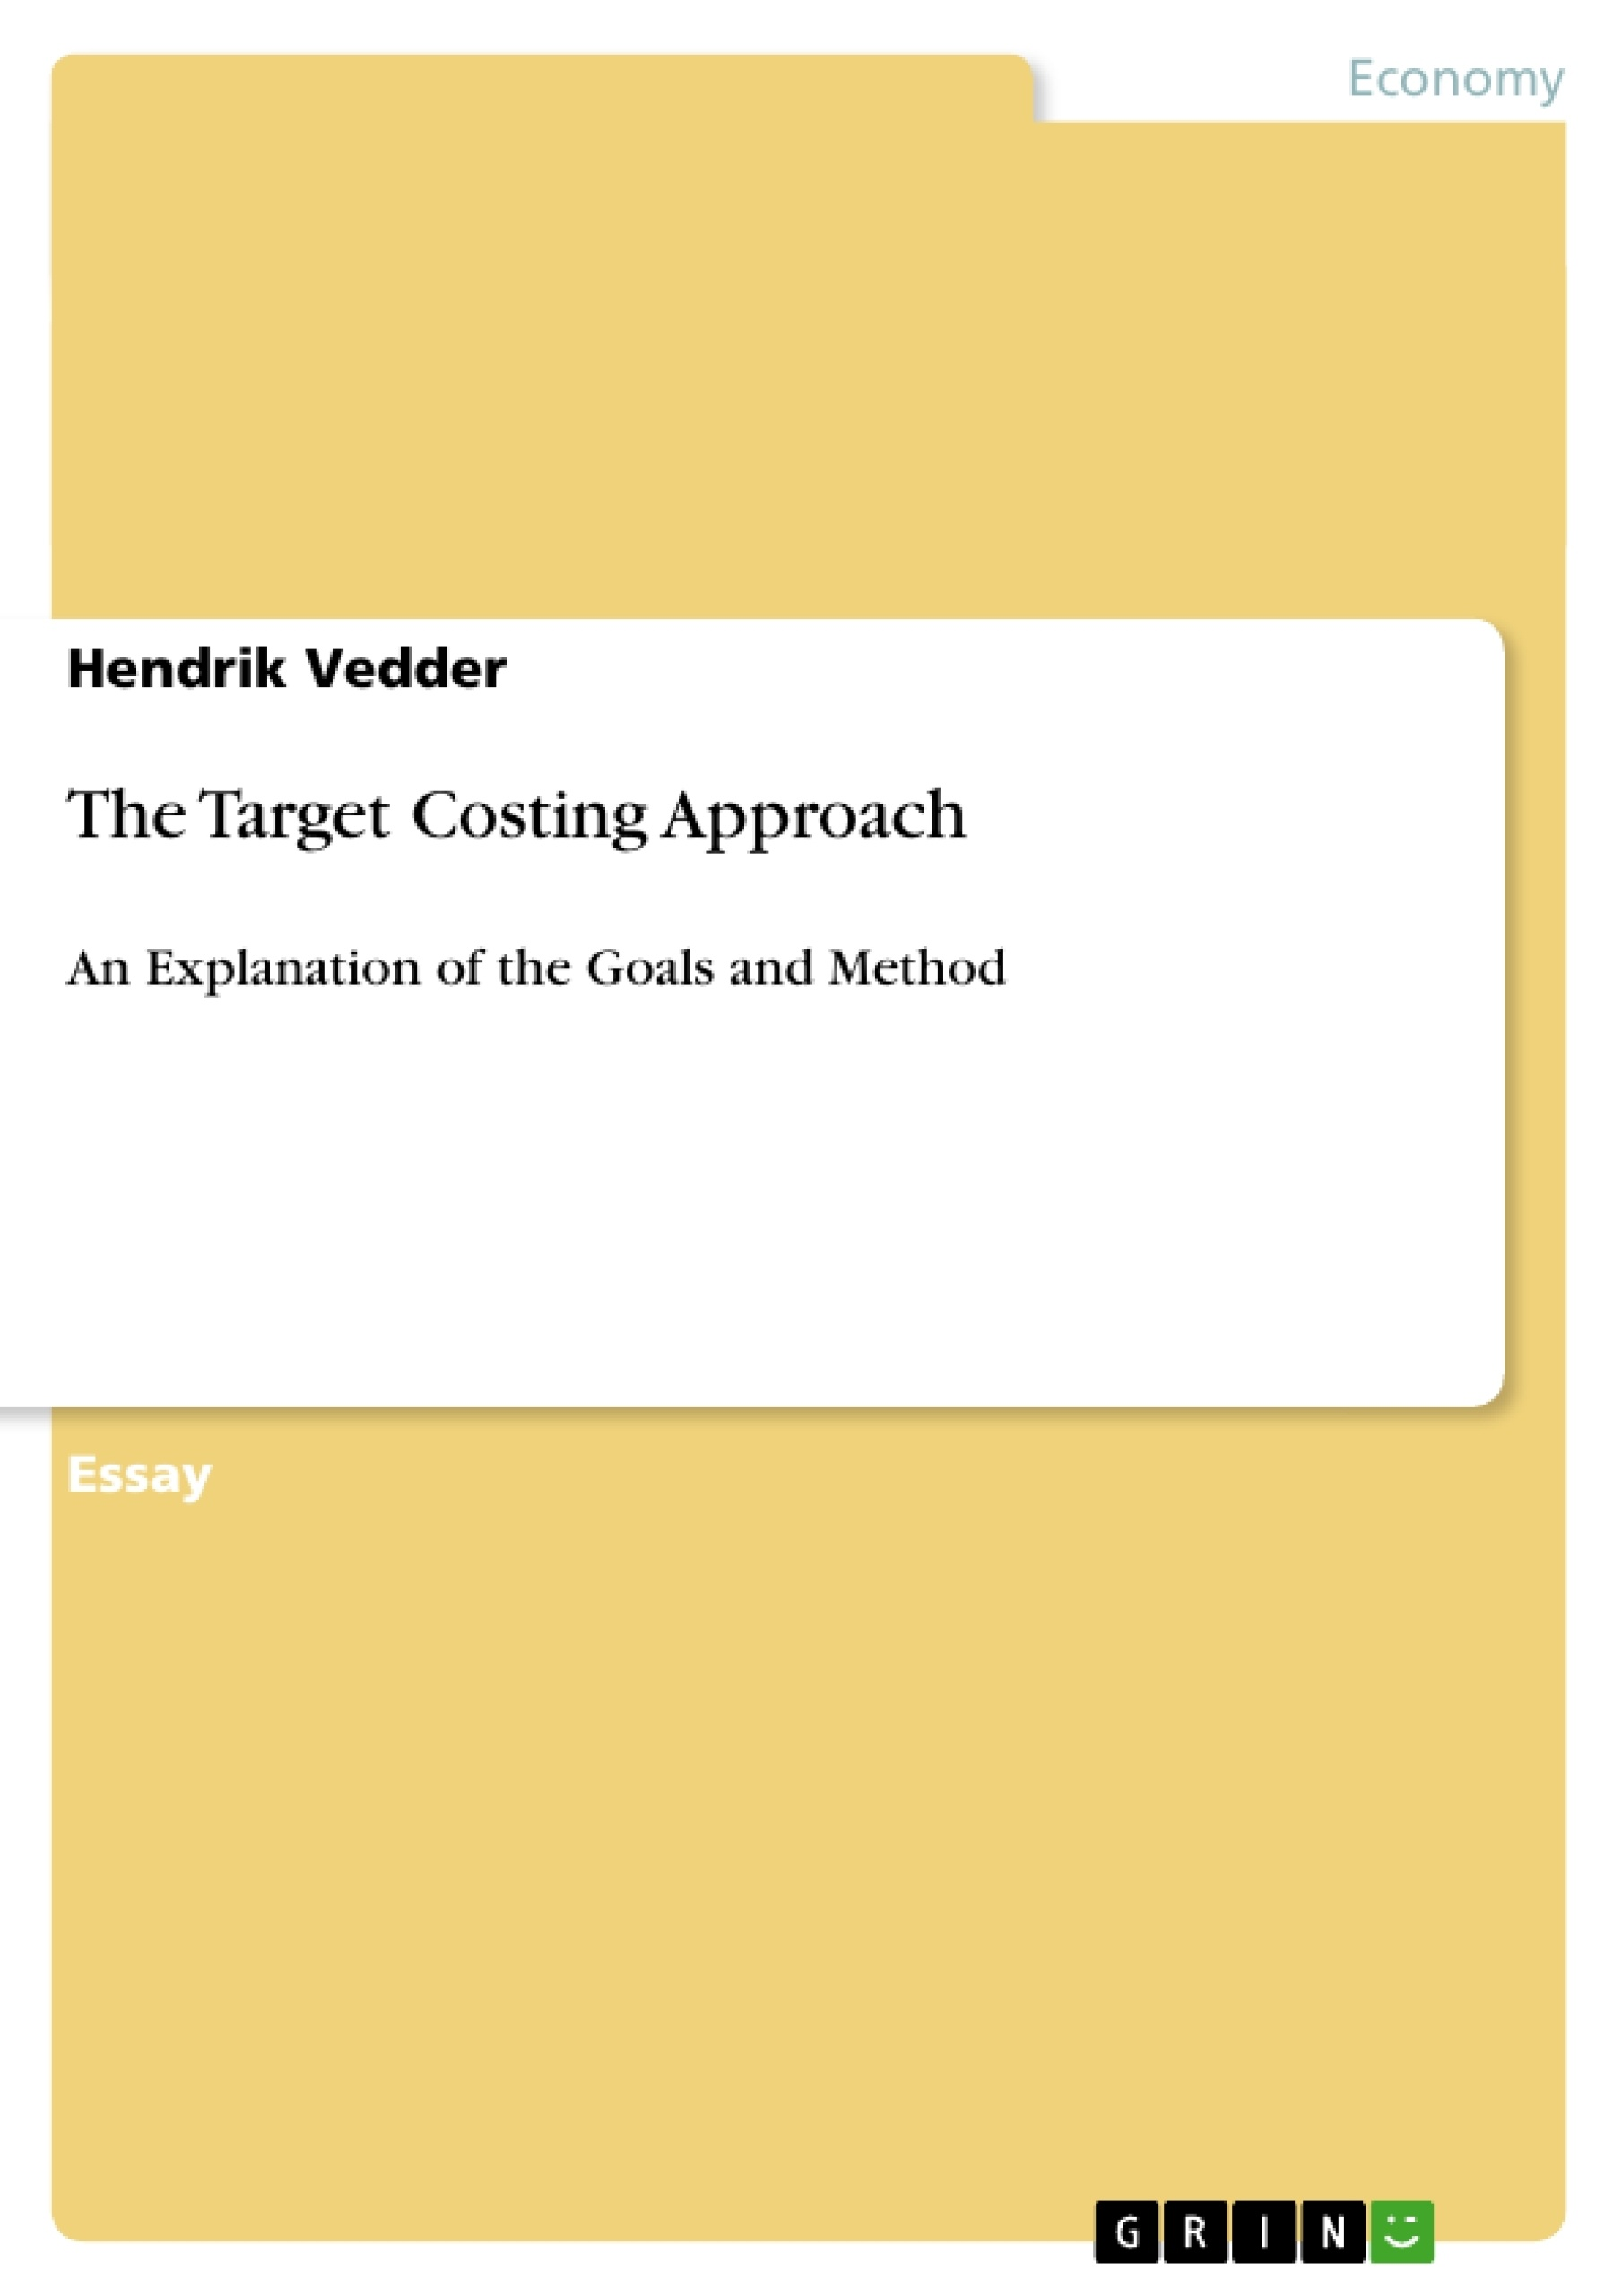 target costing research paper In the us, target costing research has been carried out within the framework of lean construction as target value design (tvd) method.